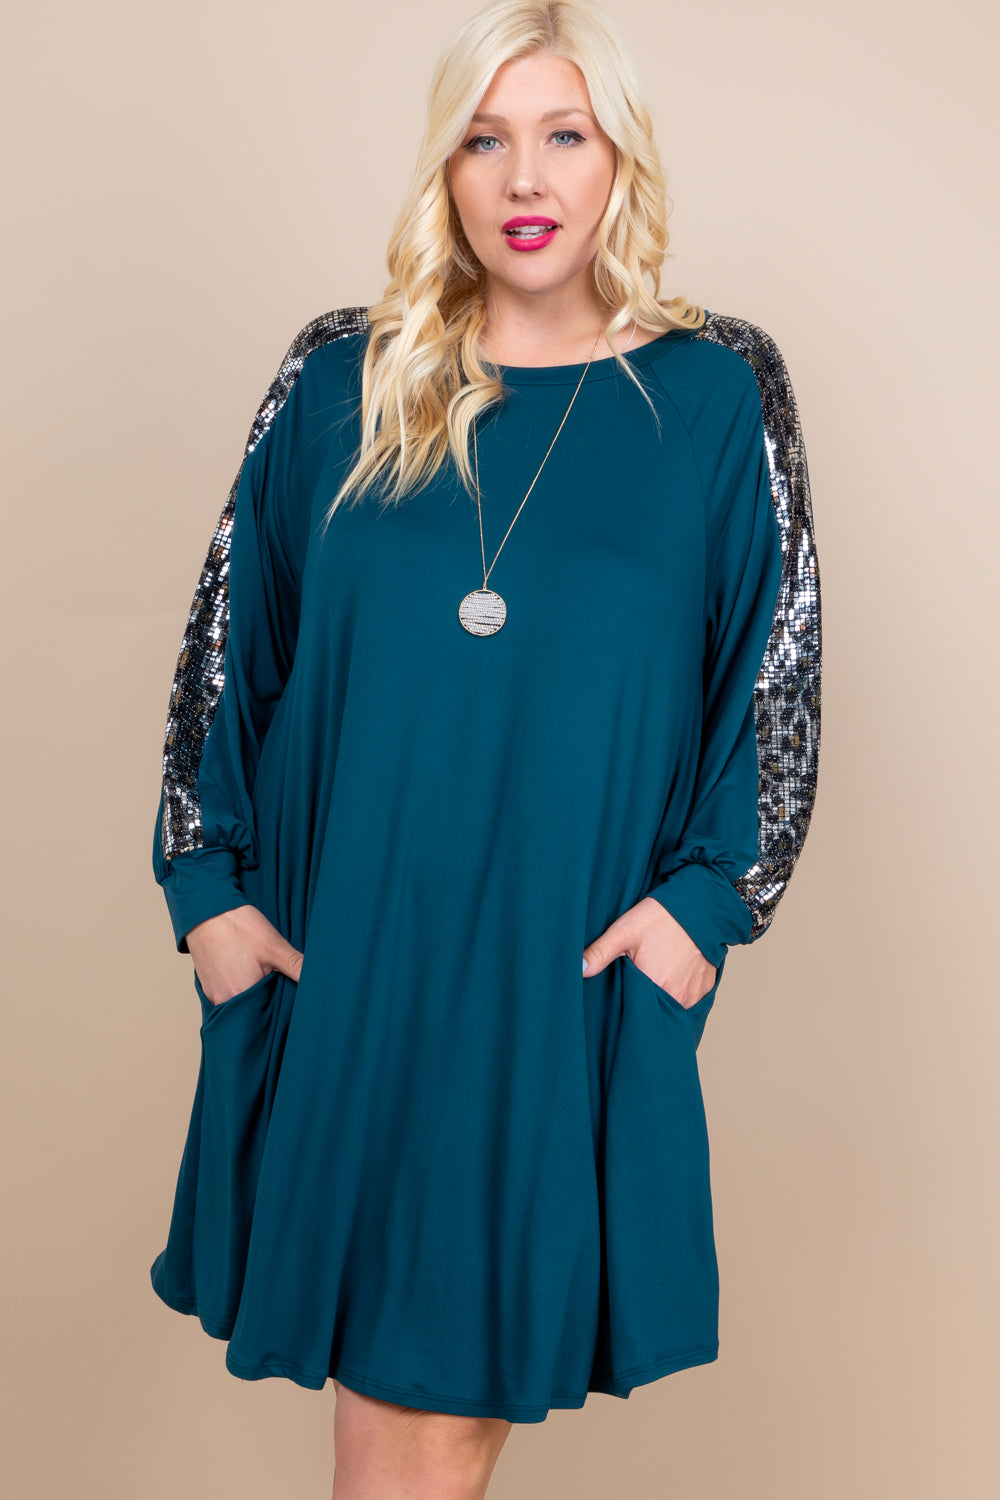 Animal Print Sequin Sleeve Dress With Pockets - Teal - Curvy Clothes Australia - Afterpay Laybuy & Humm Online